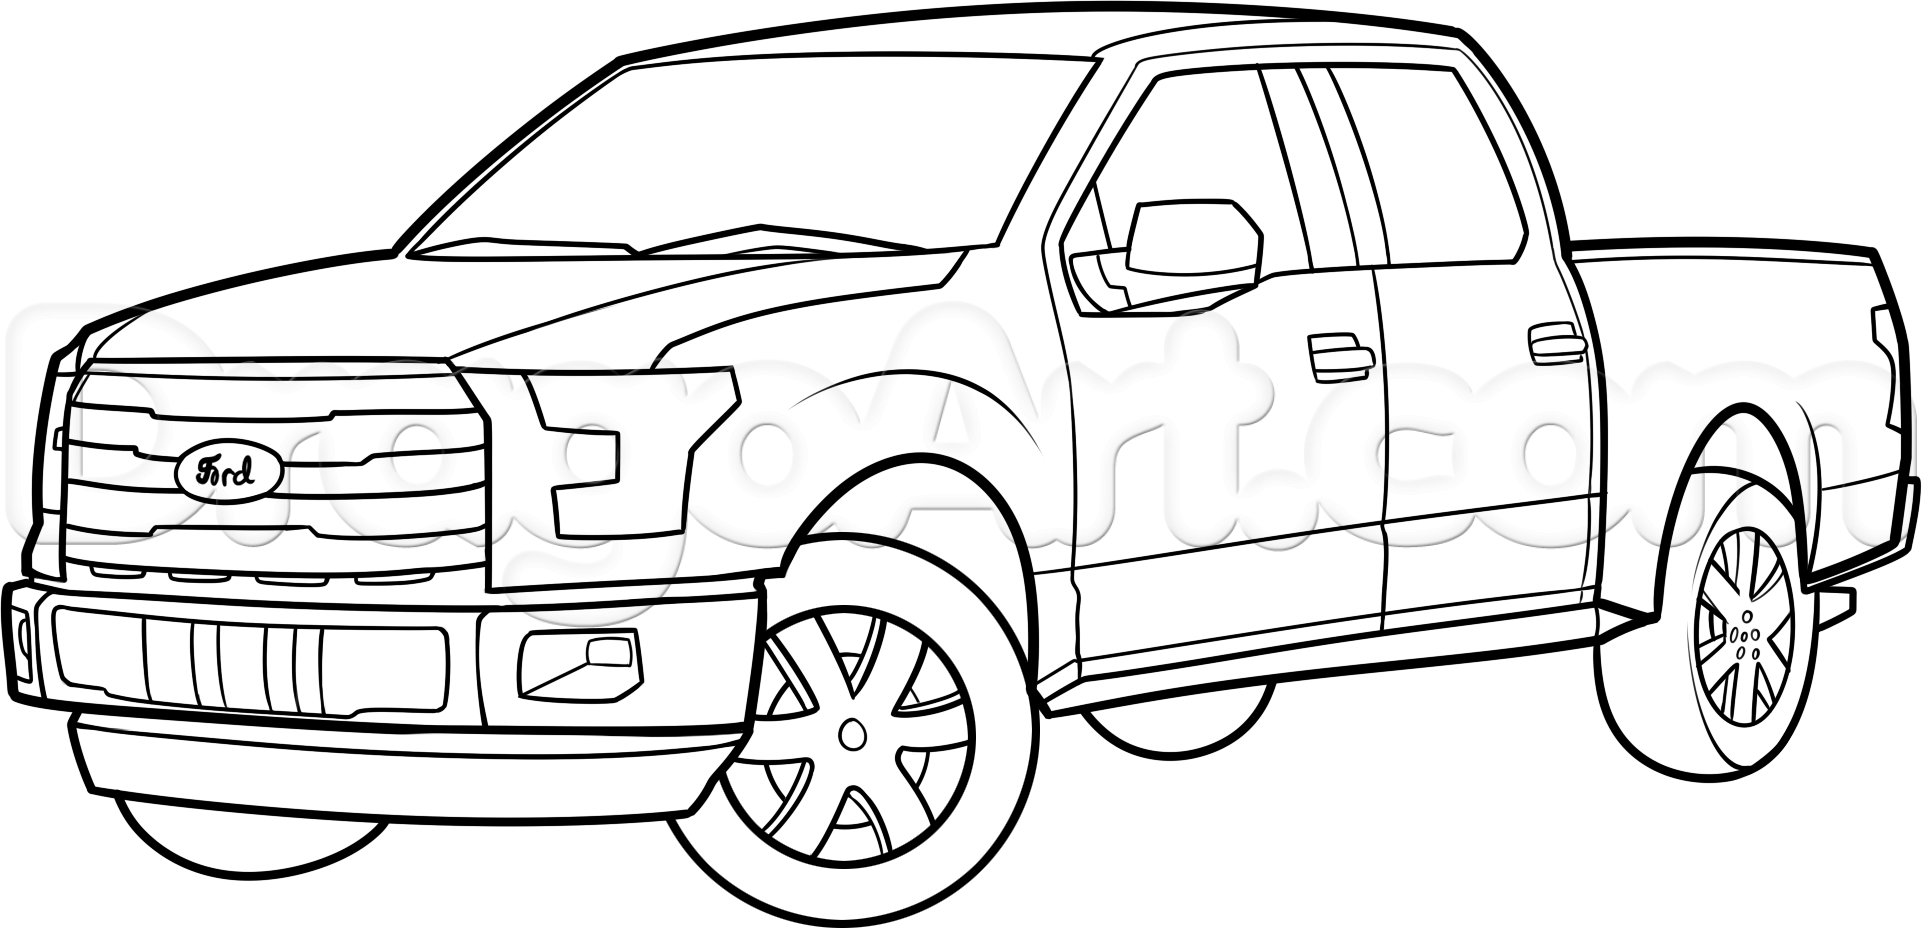 How To Draw An F 150 Ford Pickup Truck Step 11